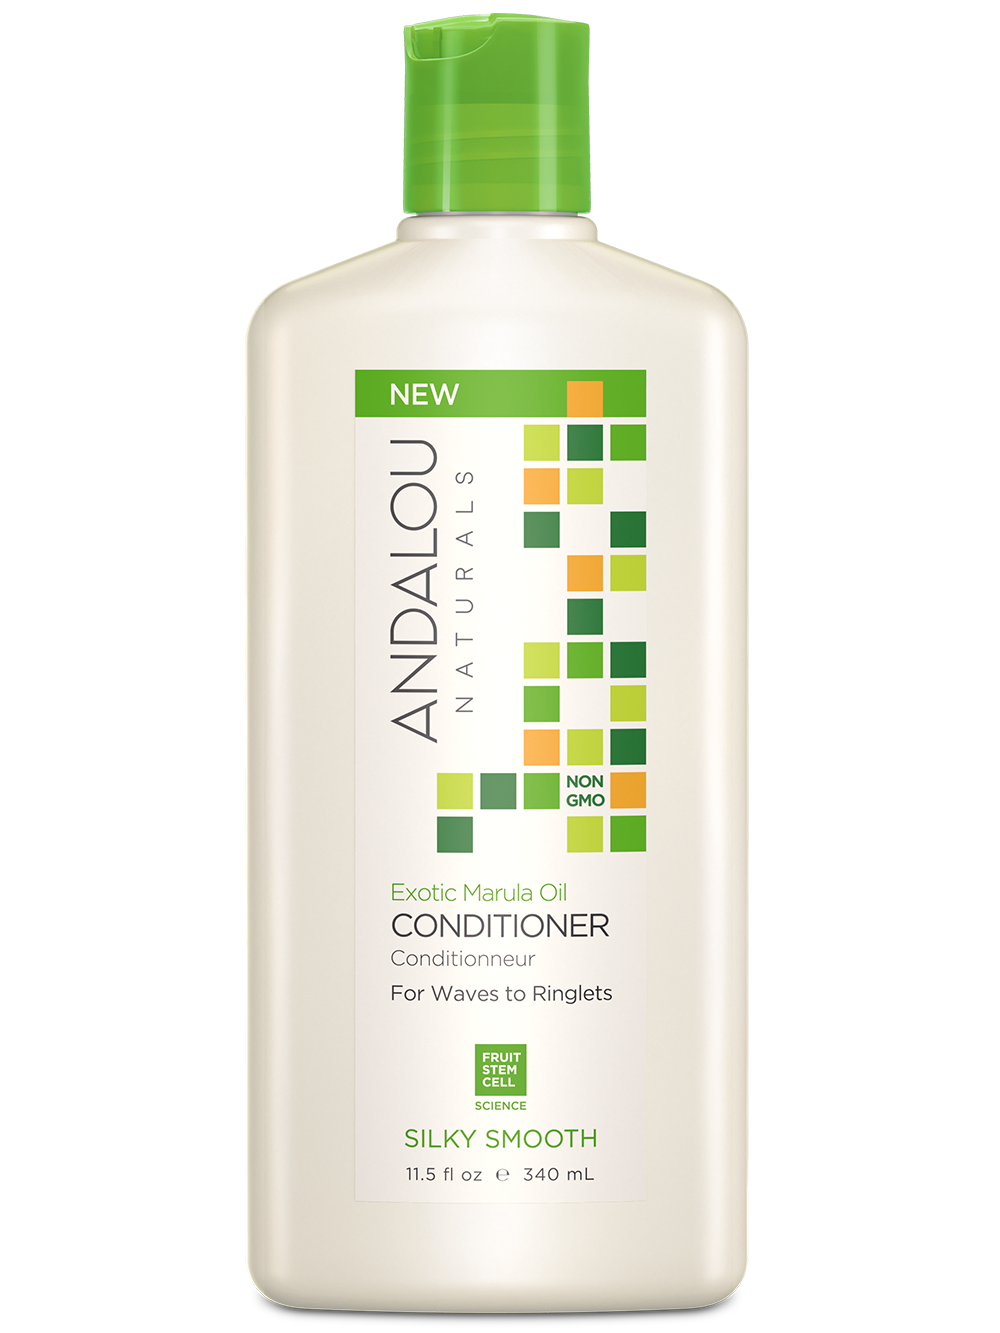 Exotic Marula Oil Silky Smooth Conditioner